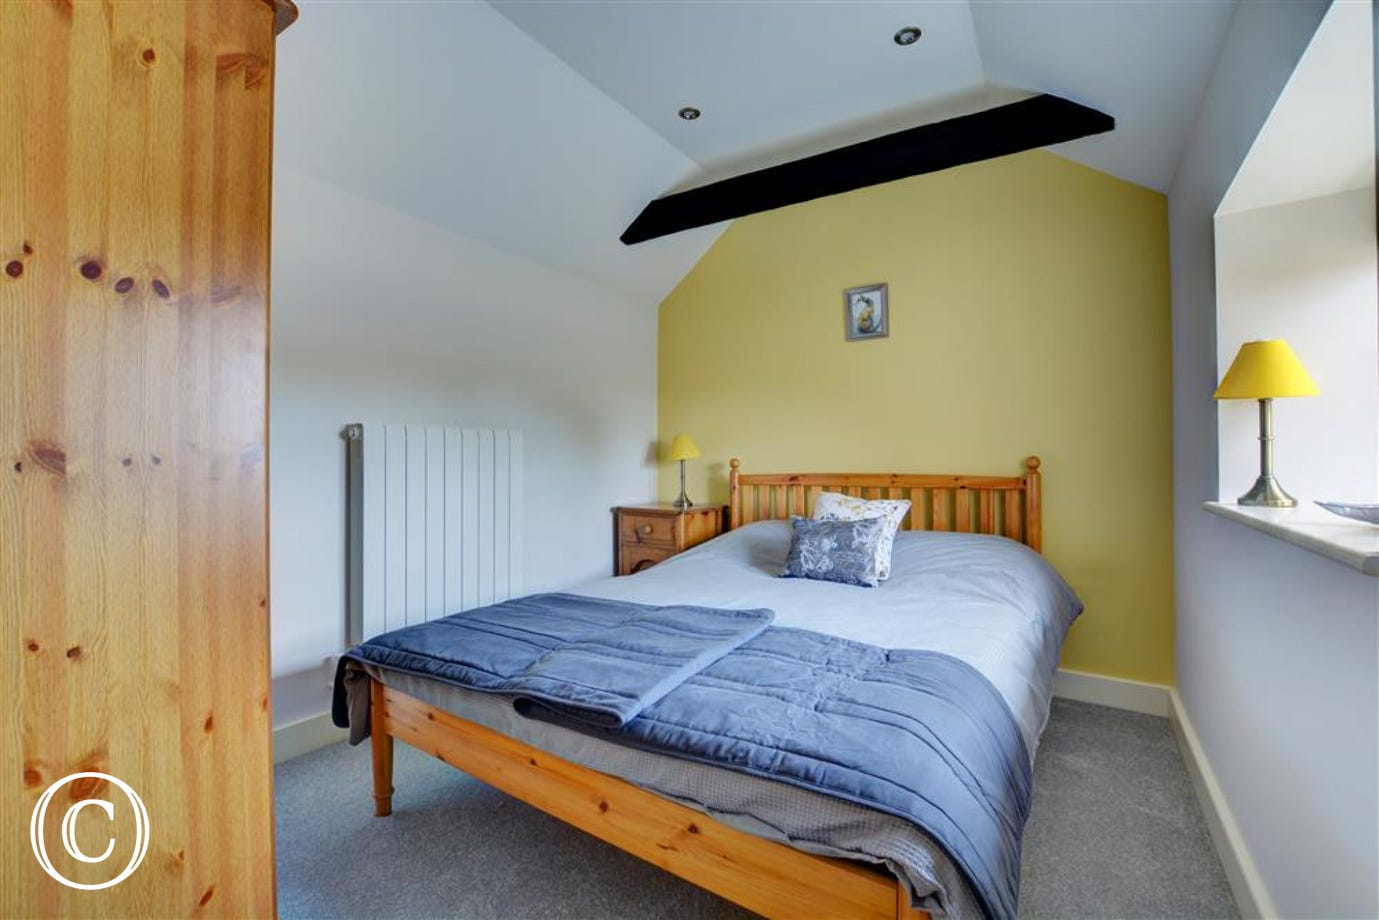 Bedroom four is a ground floor room wiith a double bed and en-suite shower room